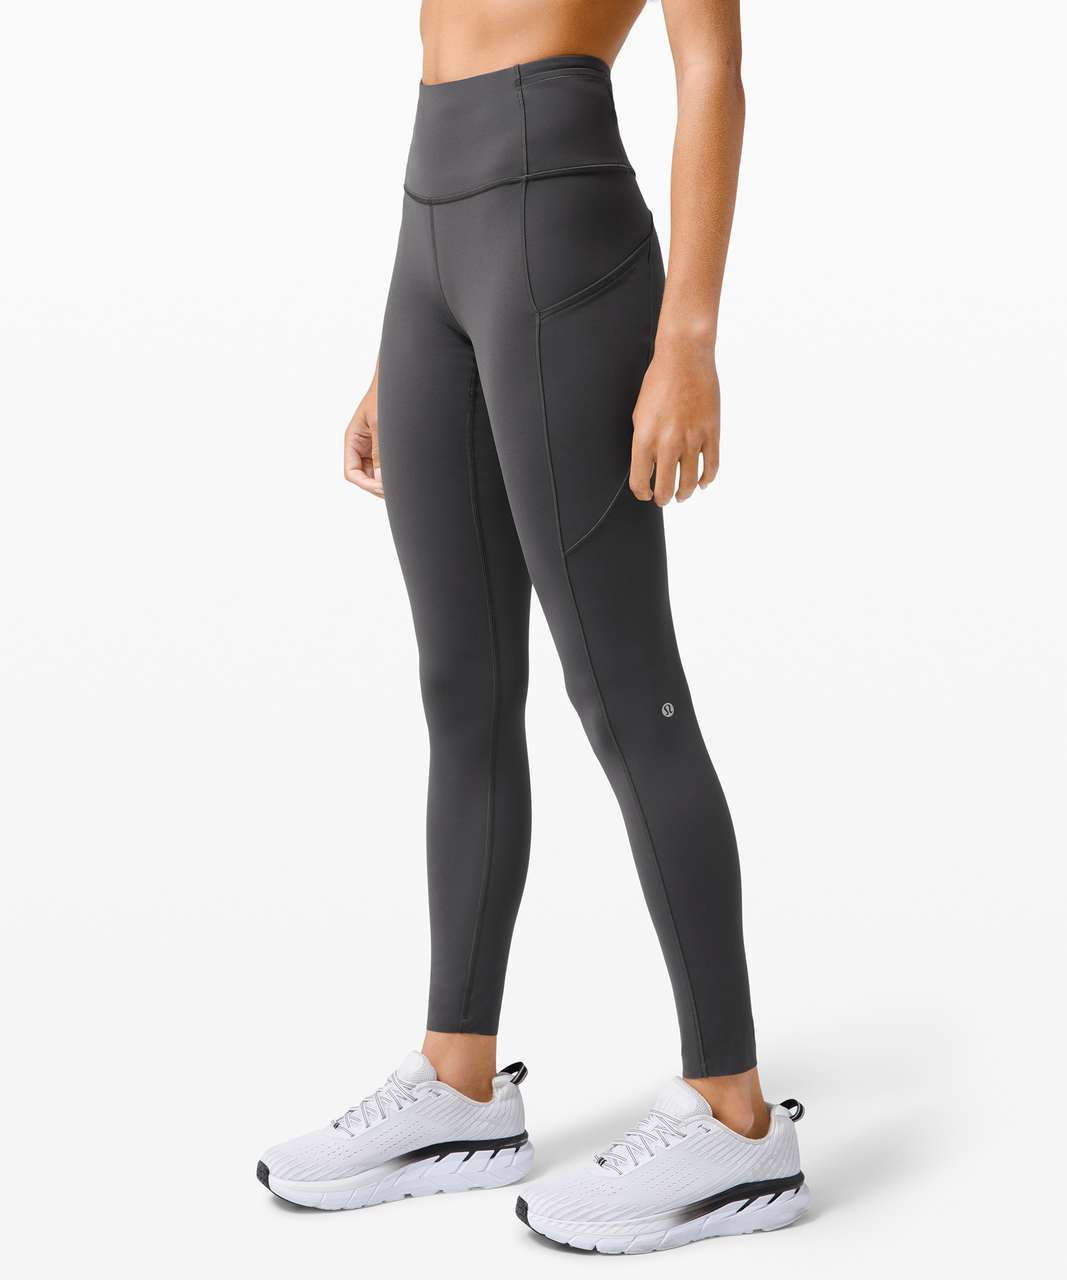 "Lululemon Fast and Free High-Rise Tight 28"" *Non-Reflective Brushed Nulux - Graphite Grey"